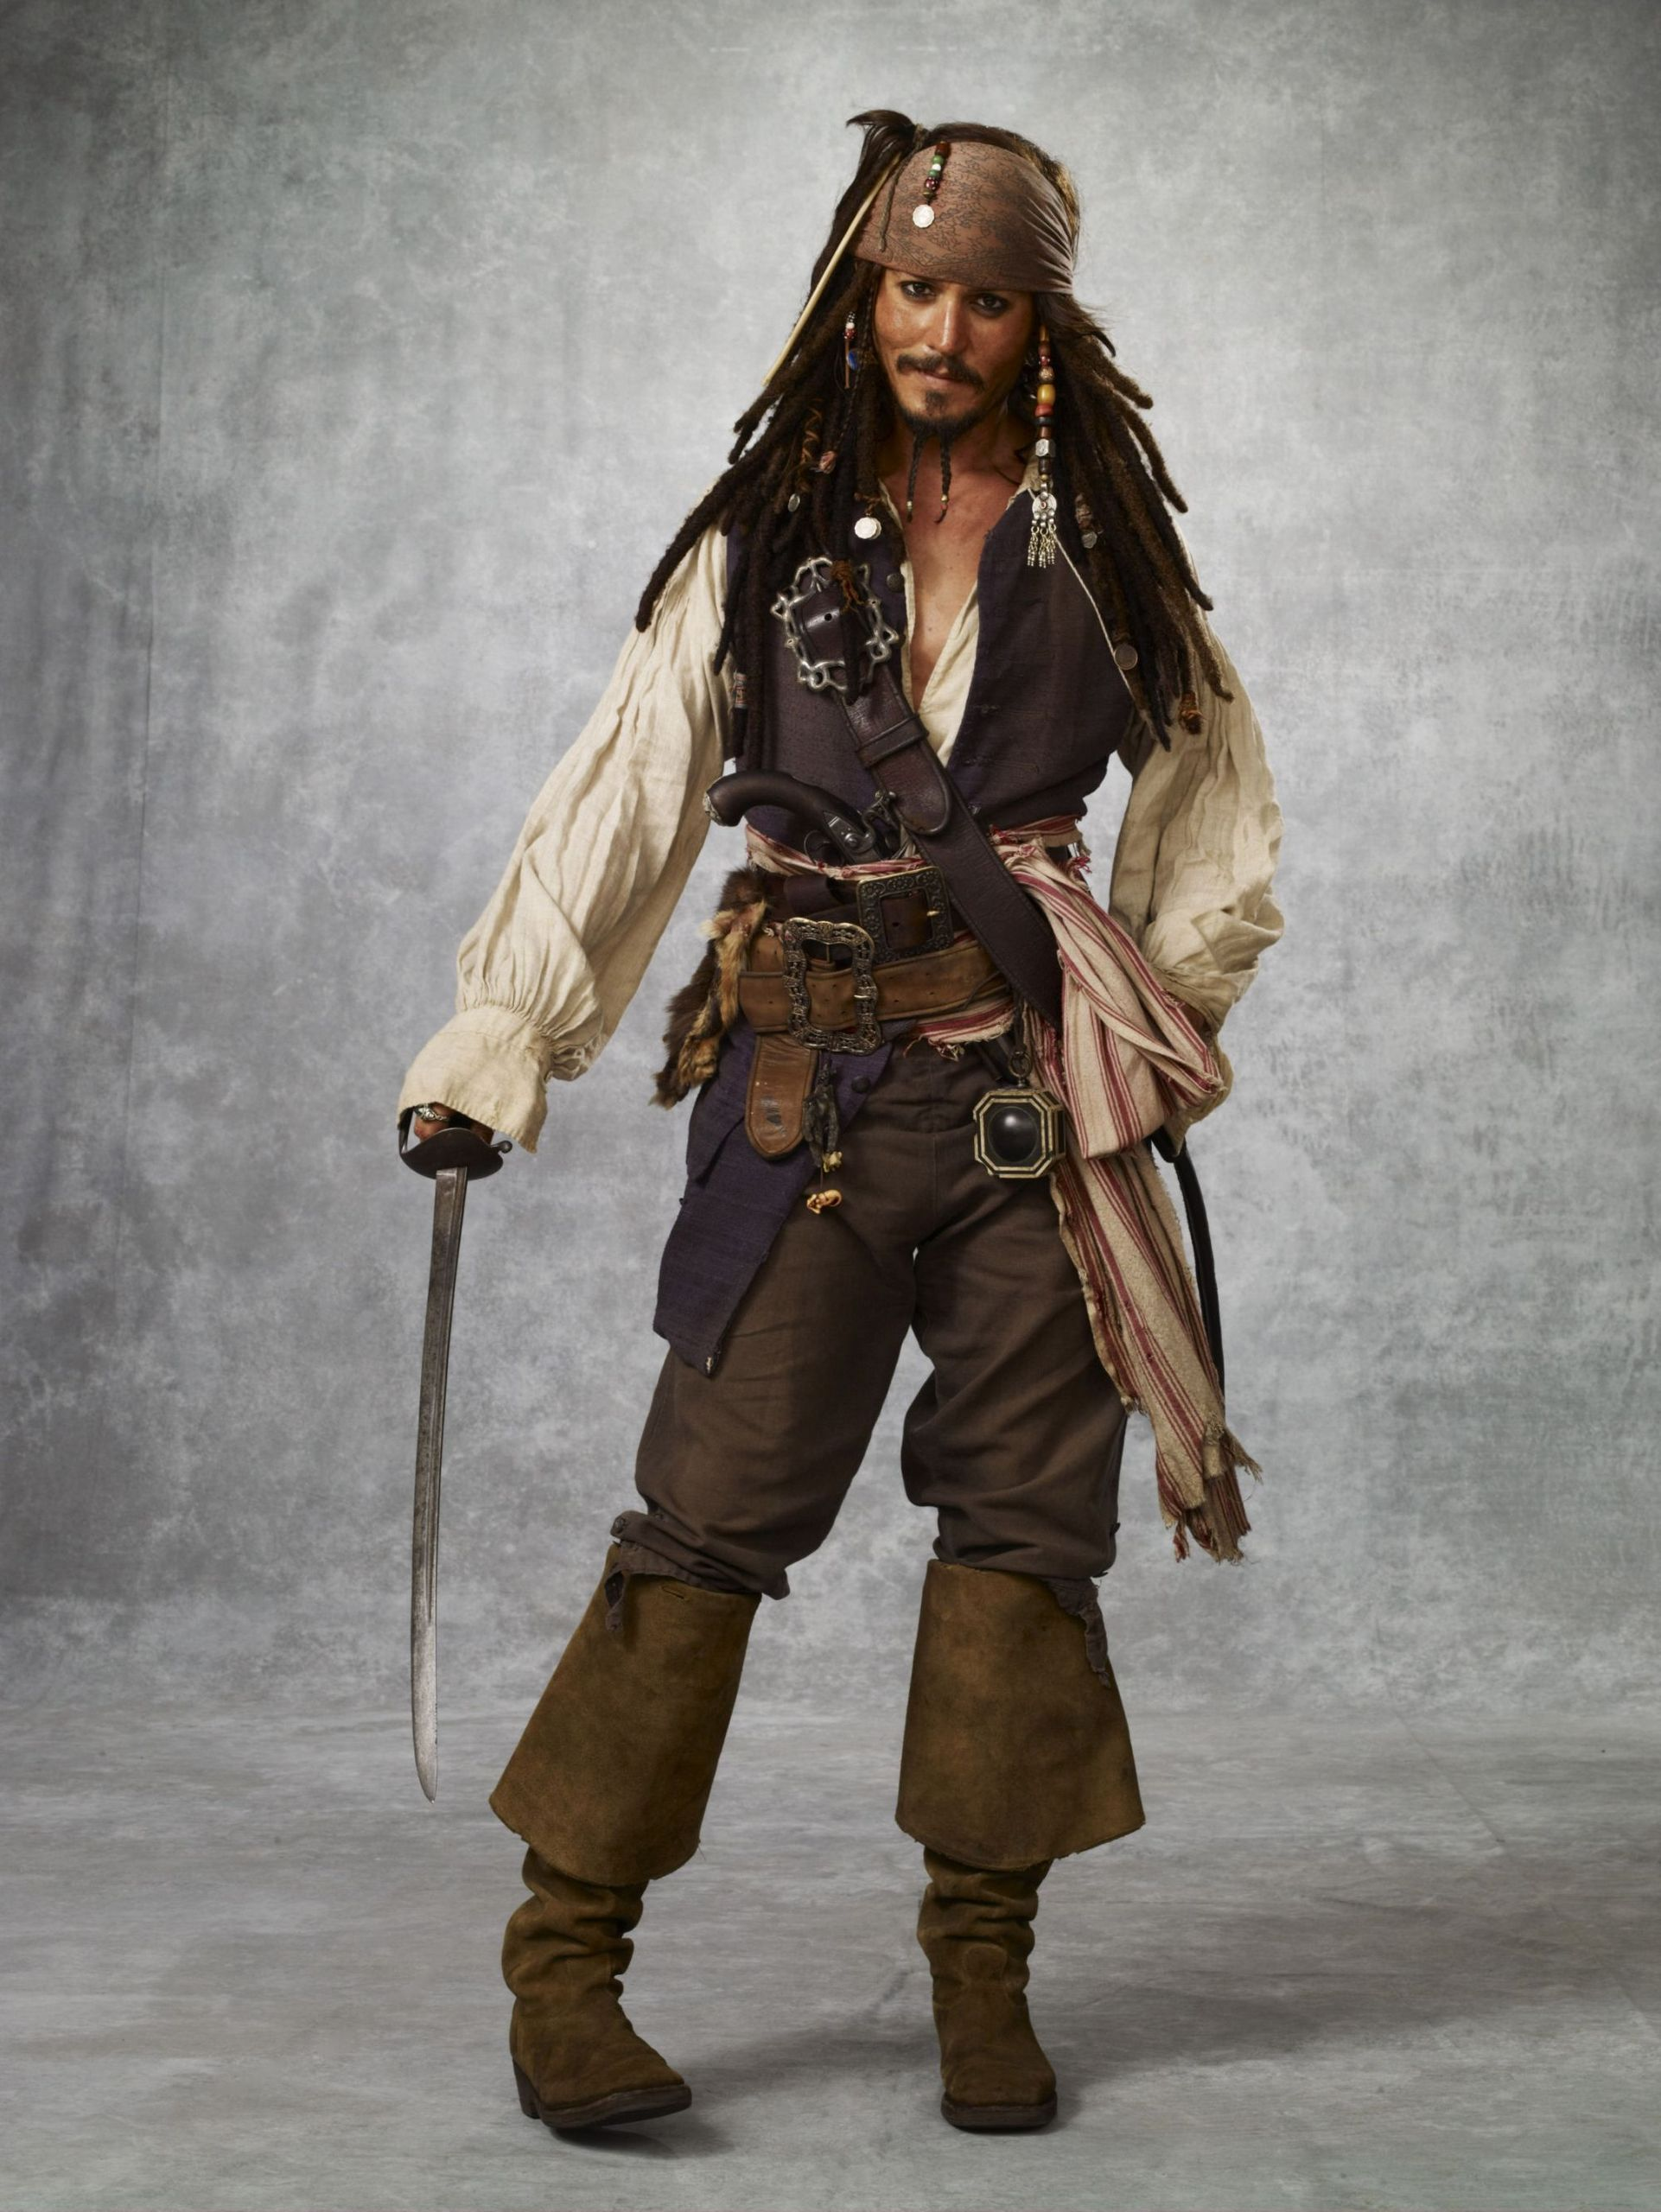 Pirates Of The Caribbean 1 Jack Sparrow , HD Wallpaper & Backgrounds